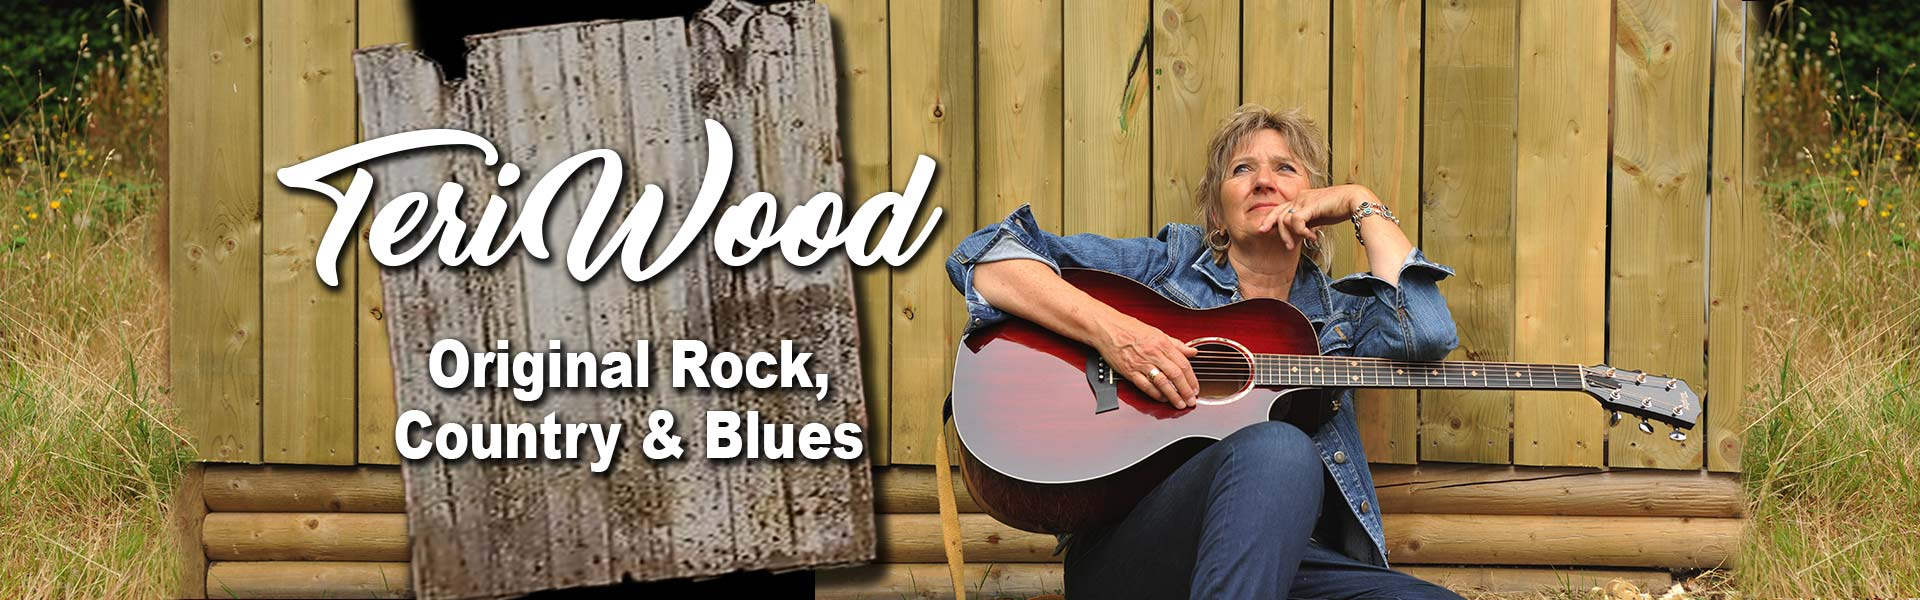 Nominated Recording Artist Singer Songwriter Teri Wood for hire